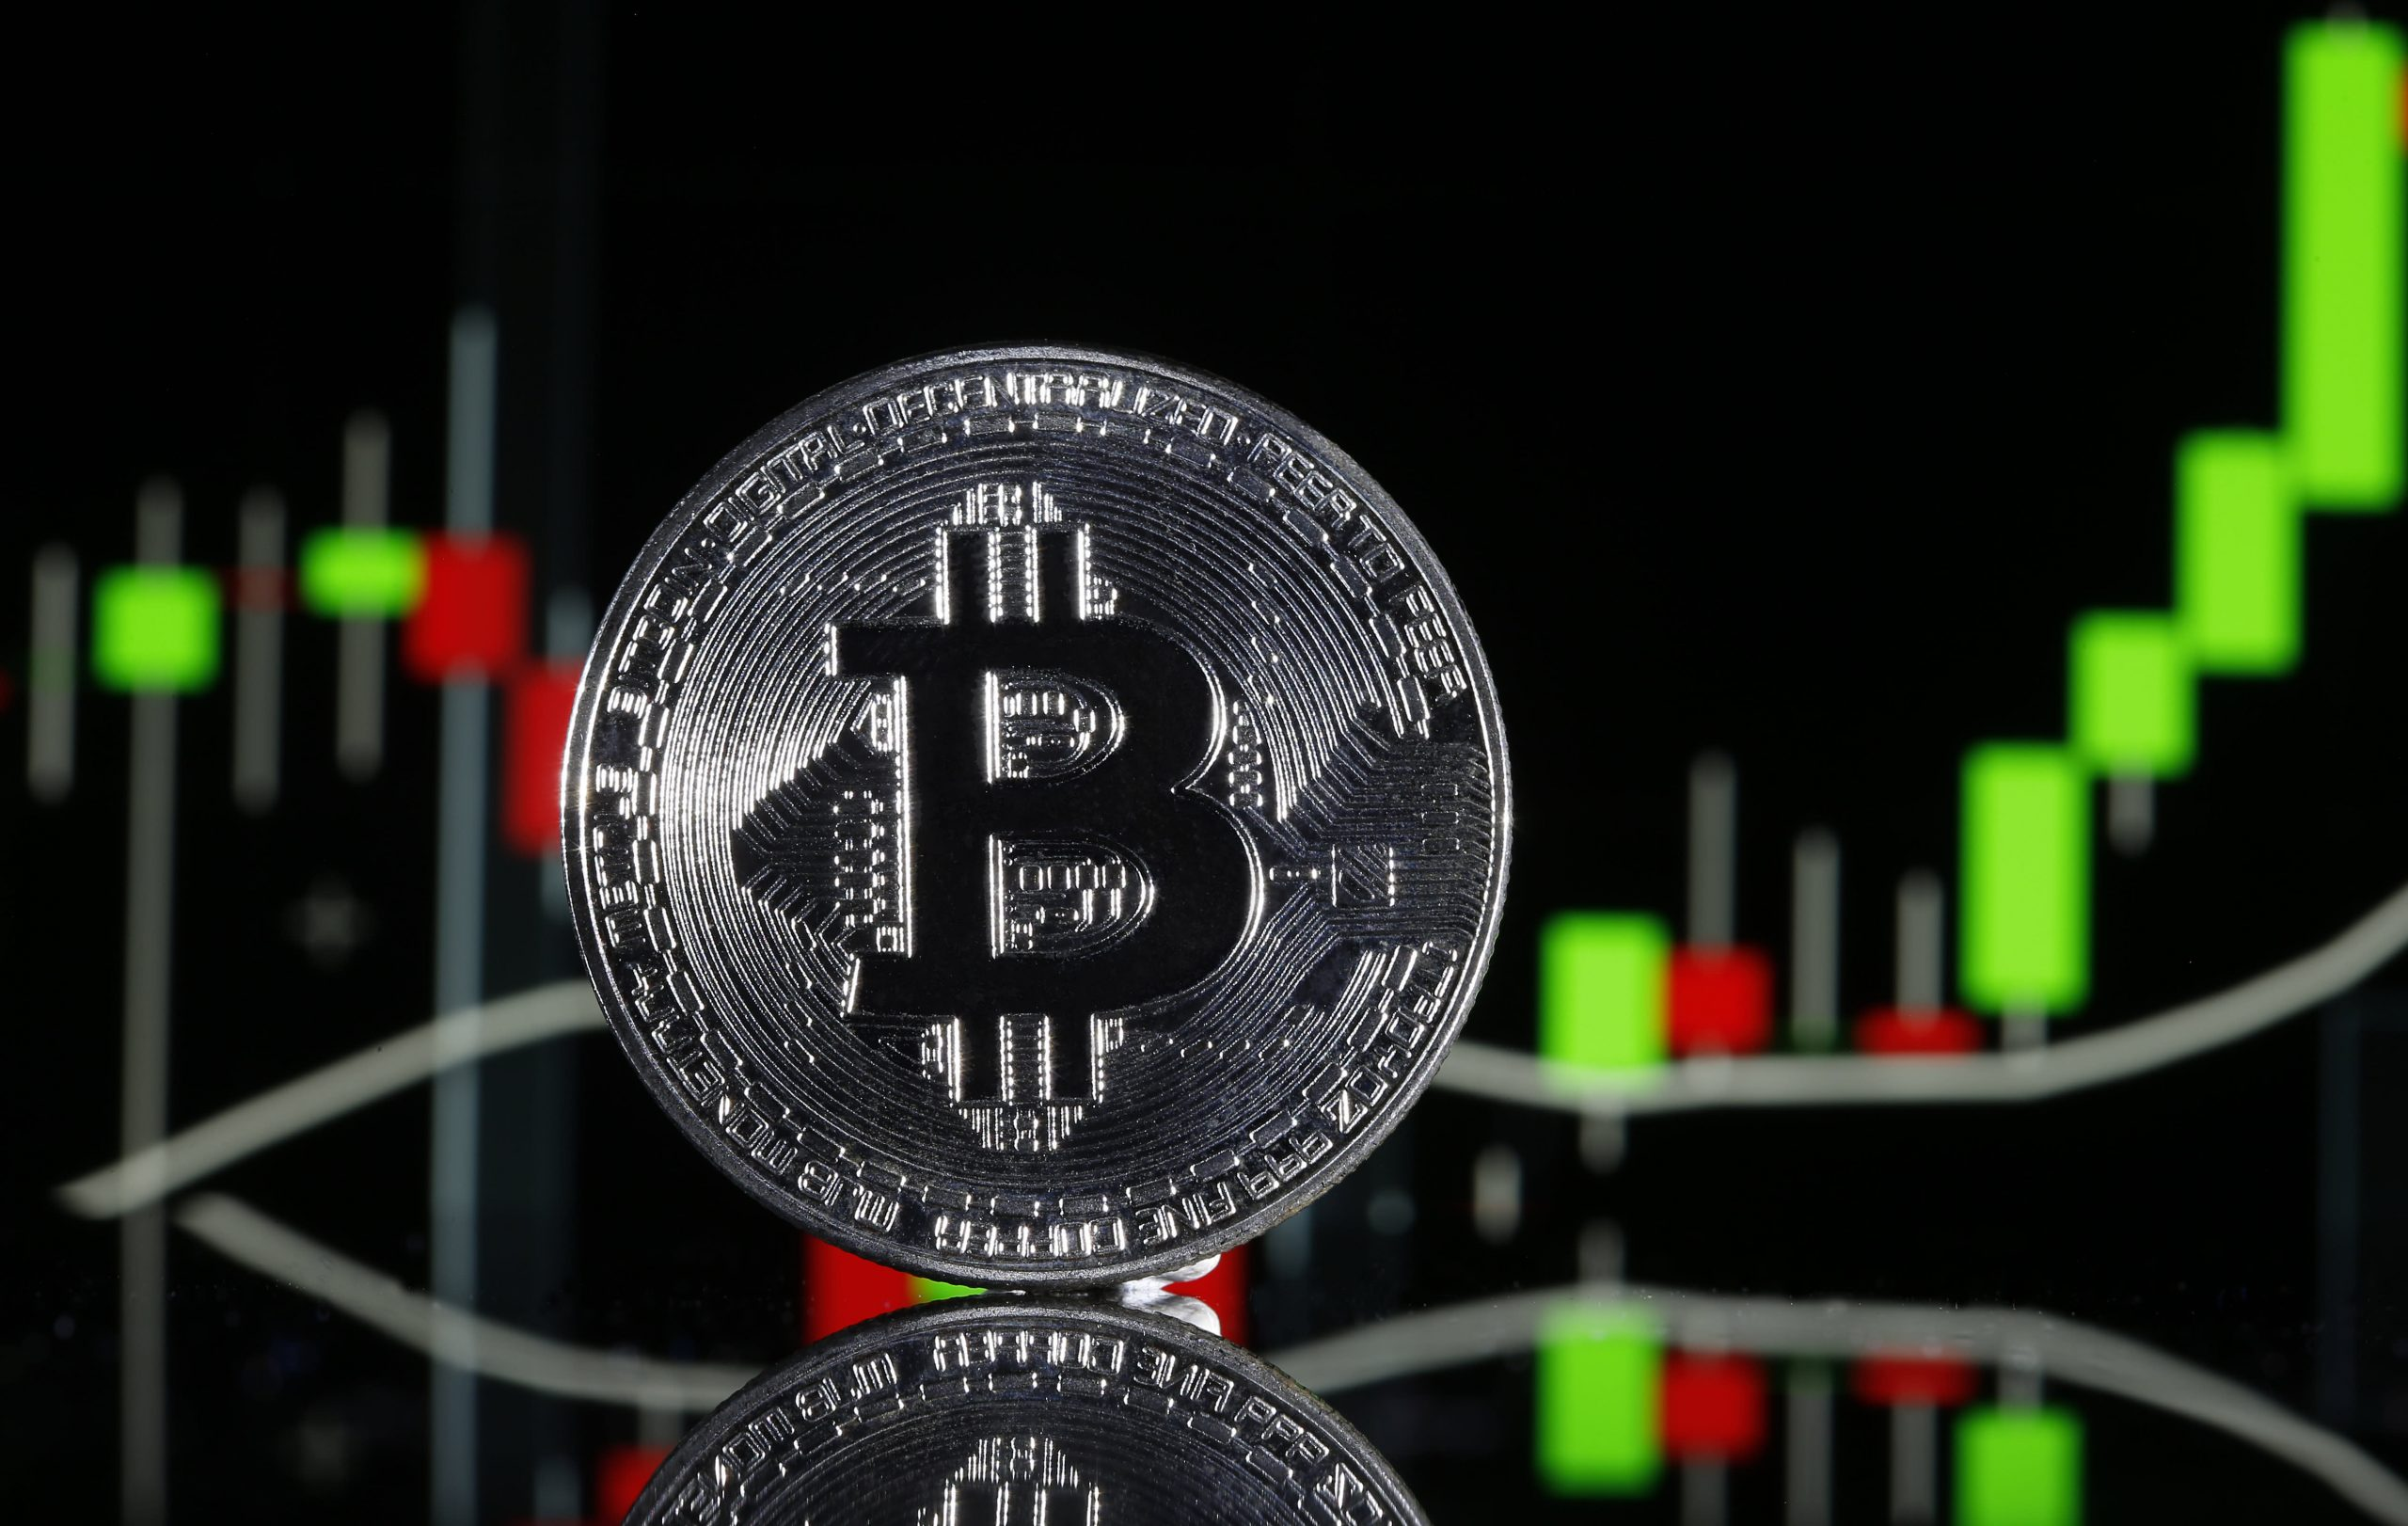 Bitcoin ETF approval is more likely in 2022: Crypto fund manager